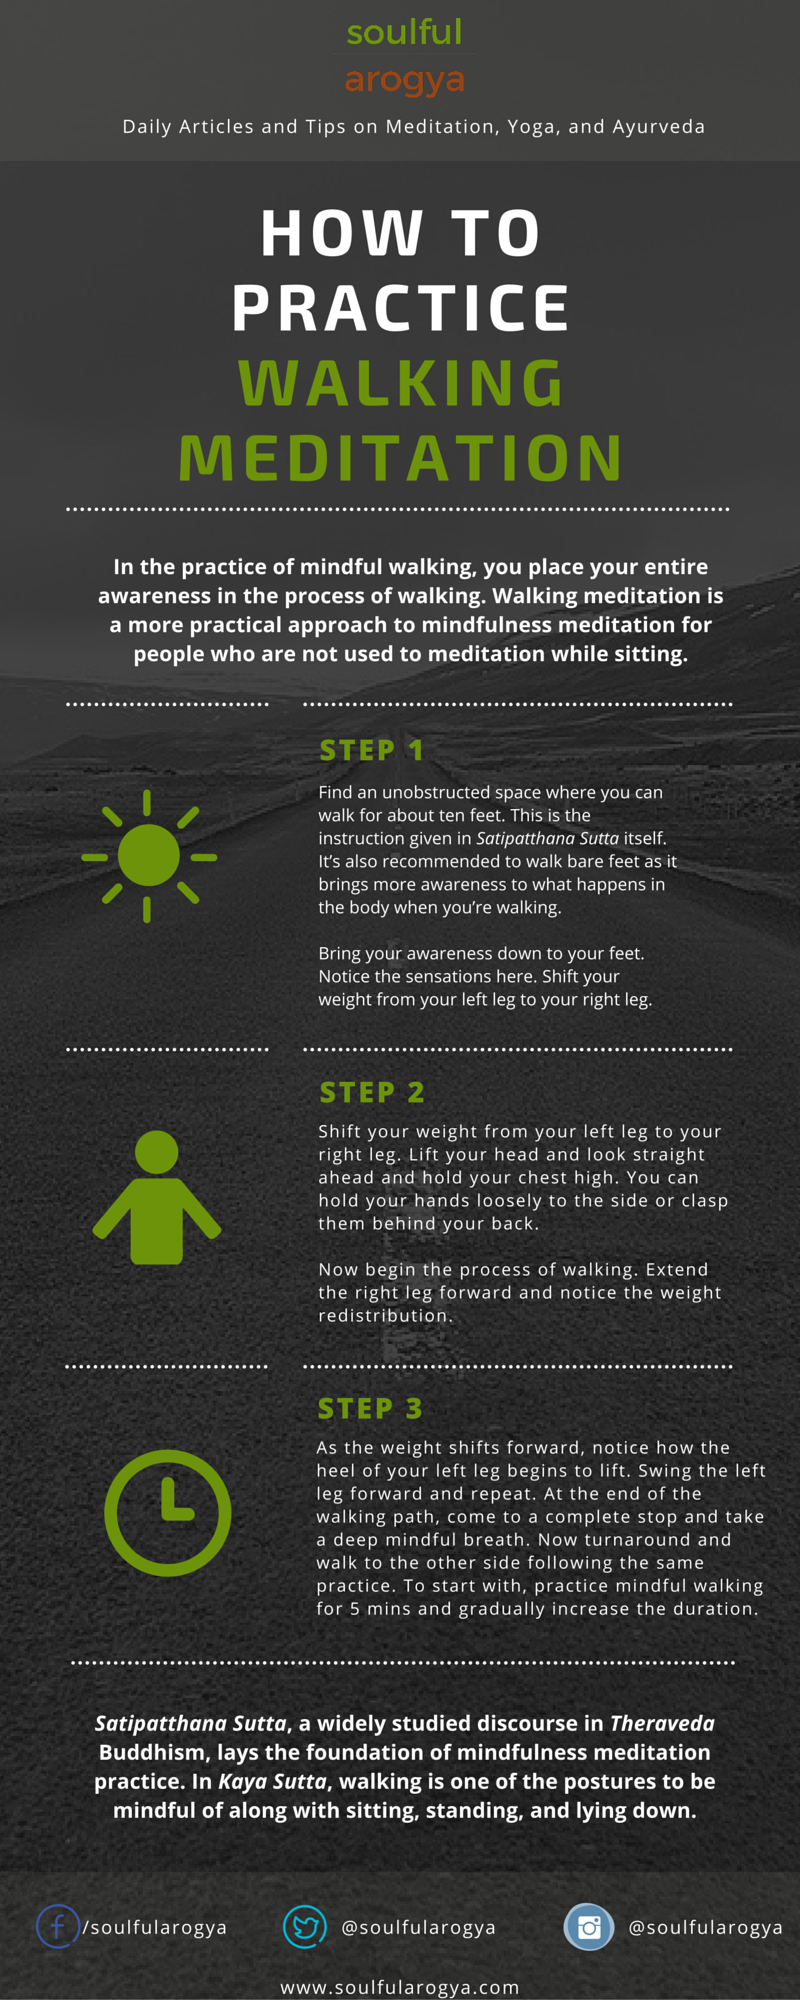 How-to-Practice-Walking-Meditation-Infographic-galleryr